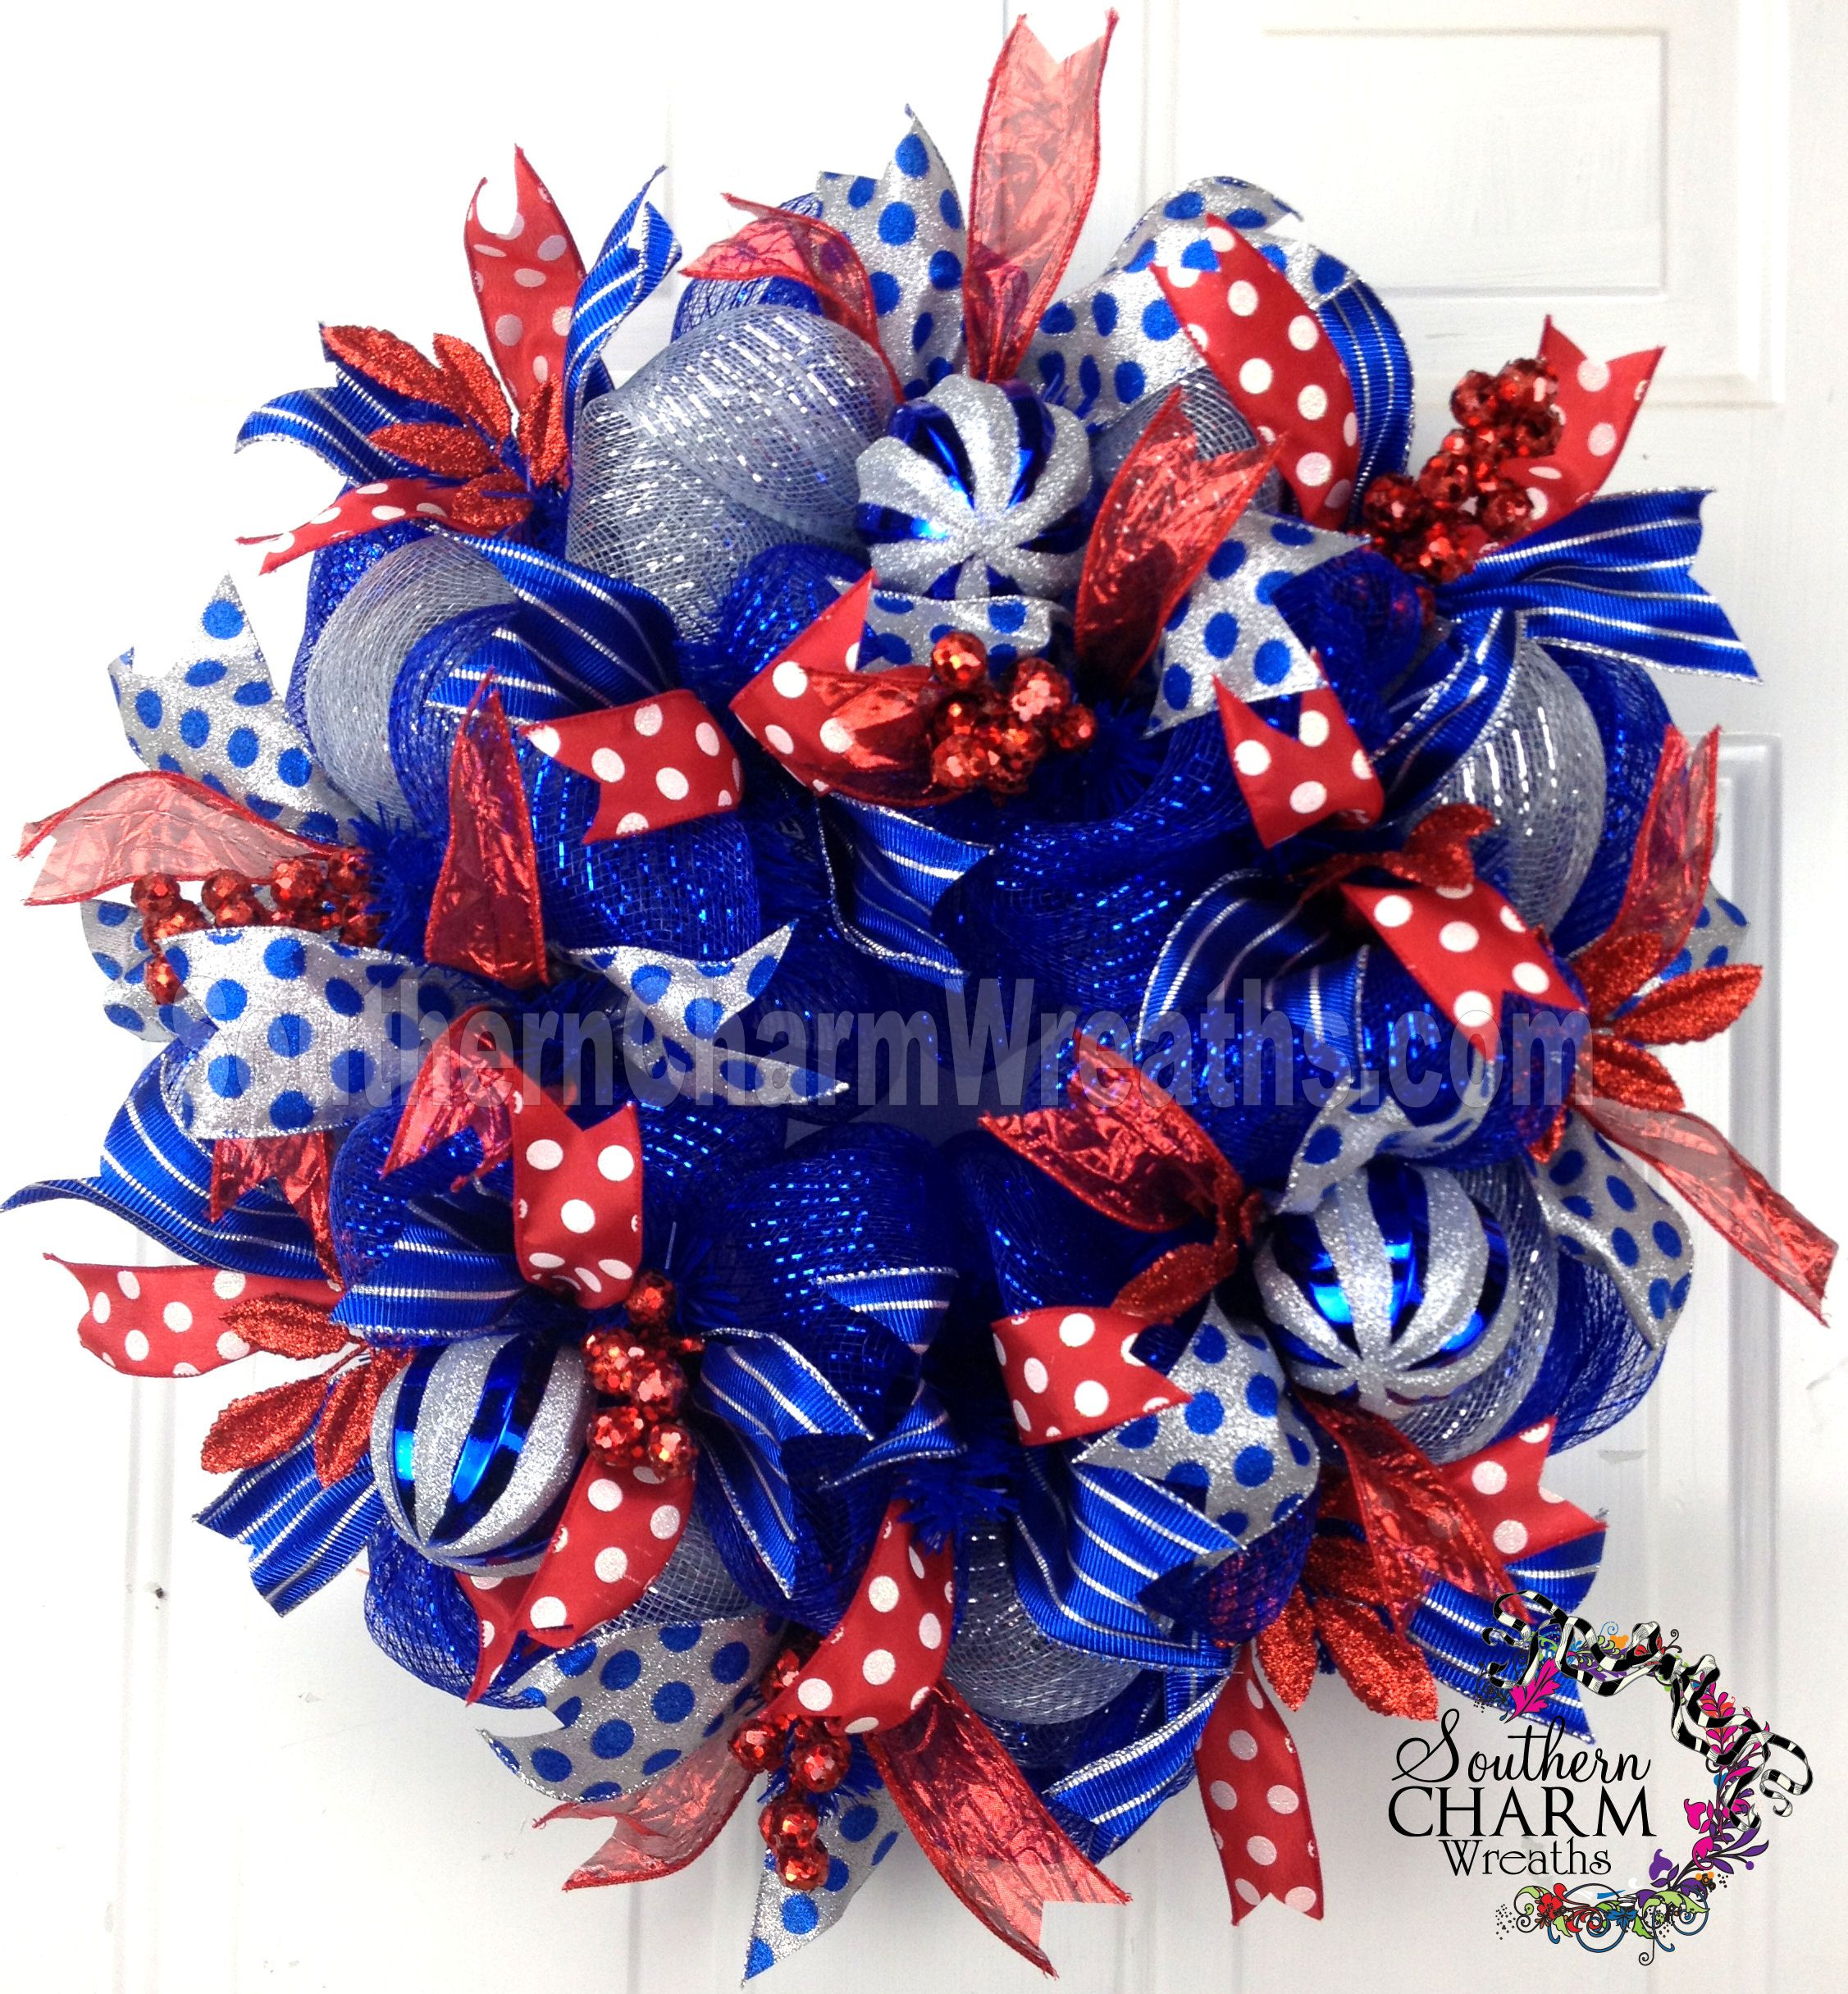 Crafts with deco mesh - Deco Mesh Wreaths Twist Tie Dilemma Solved